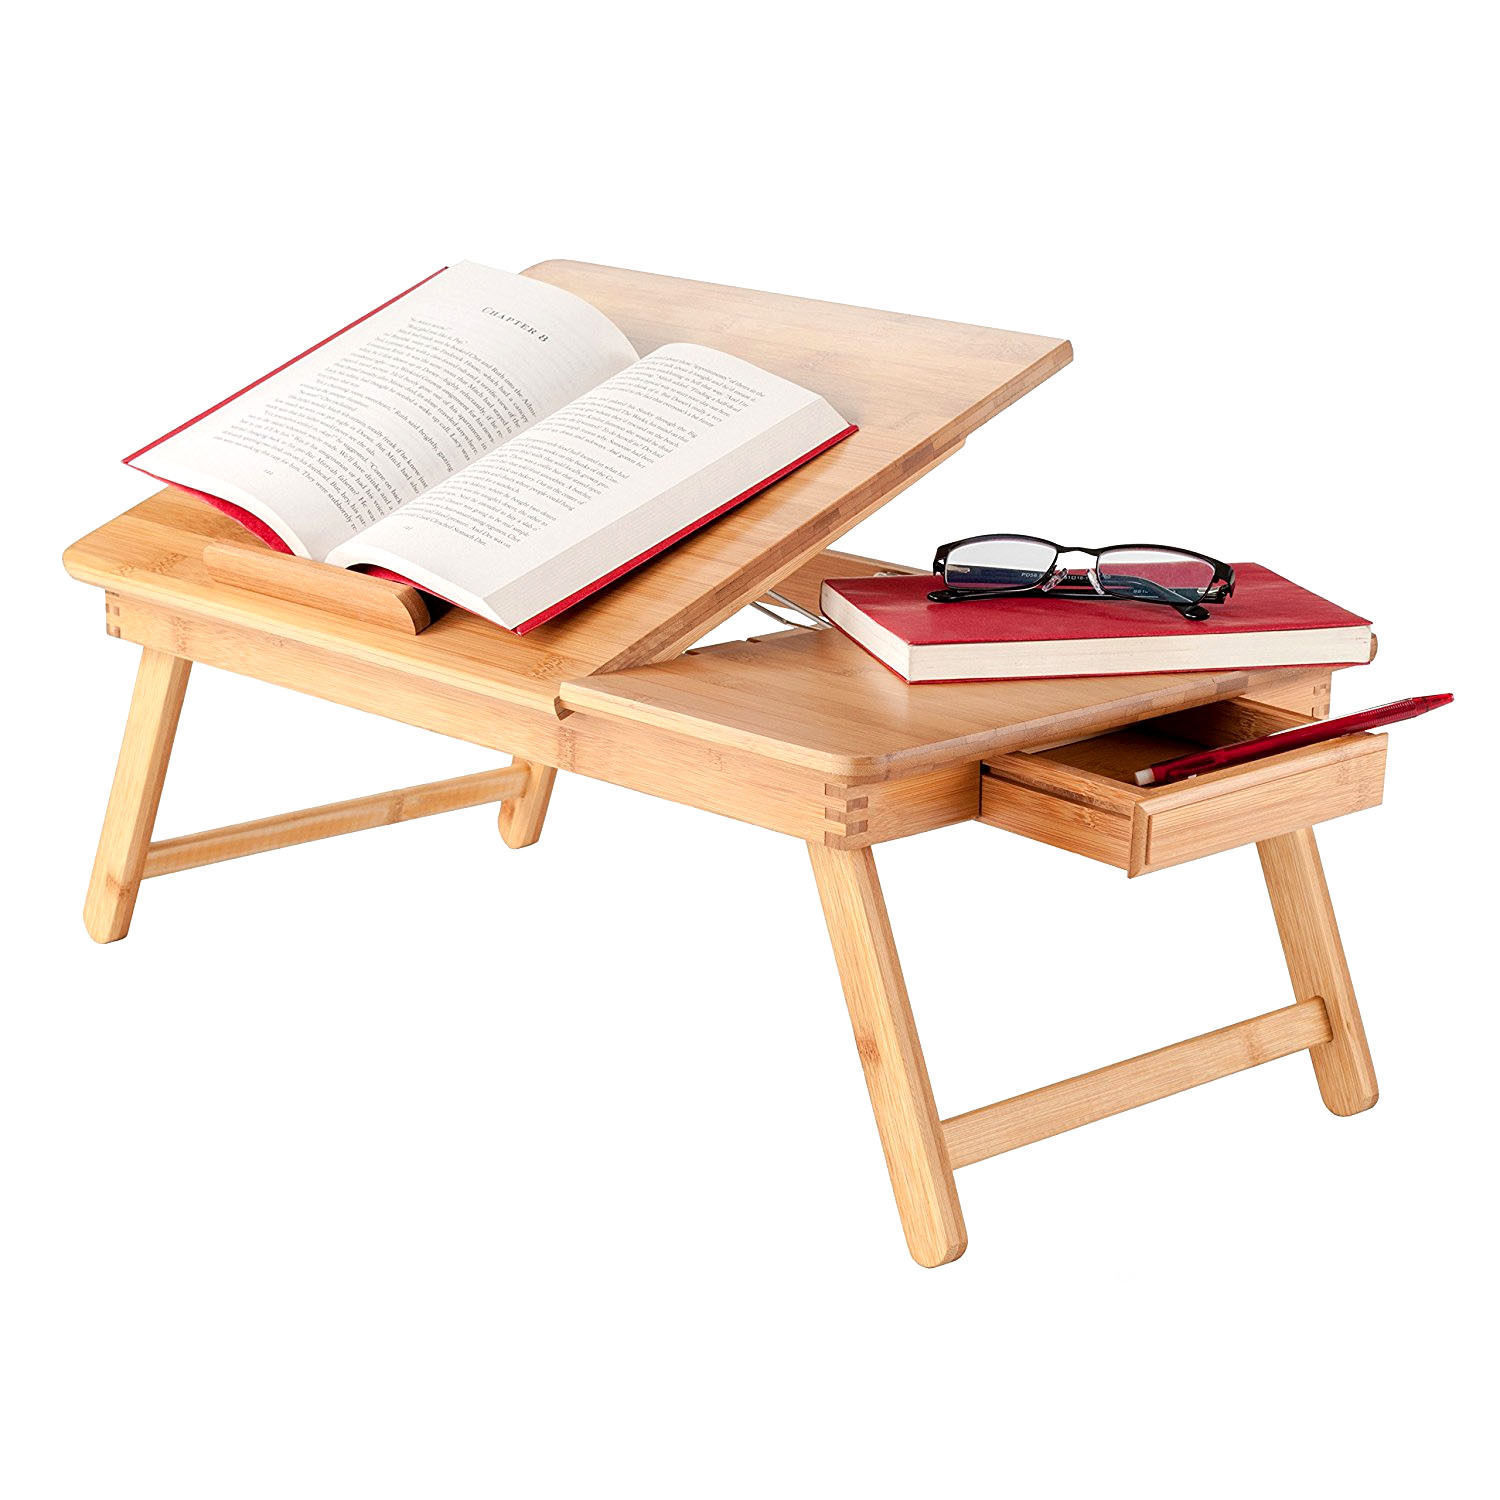 UBesGoo Portable Bamboo Laptop Desk Table Folding Breakfast Bed Serving Tray + Drawer